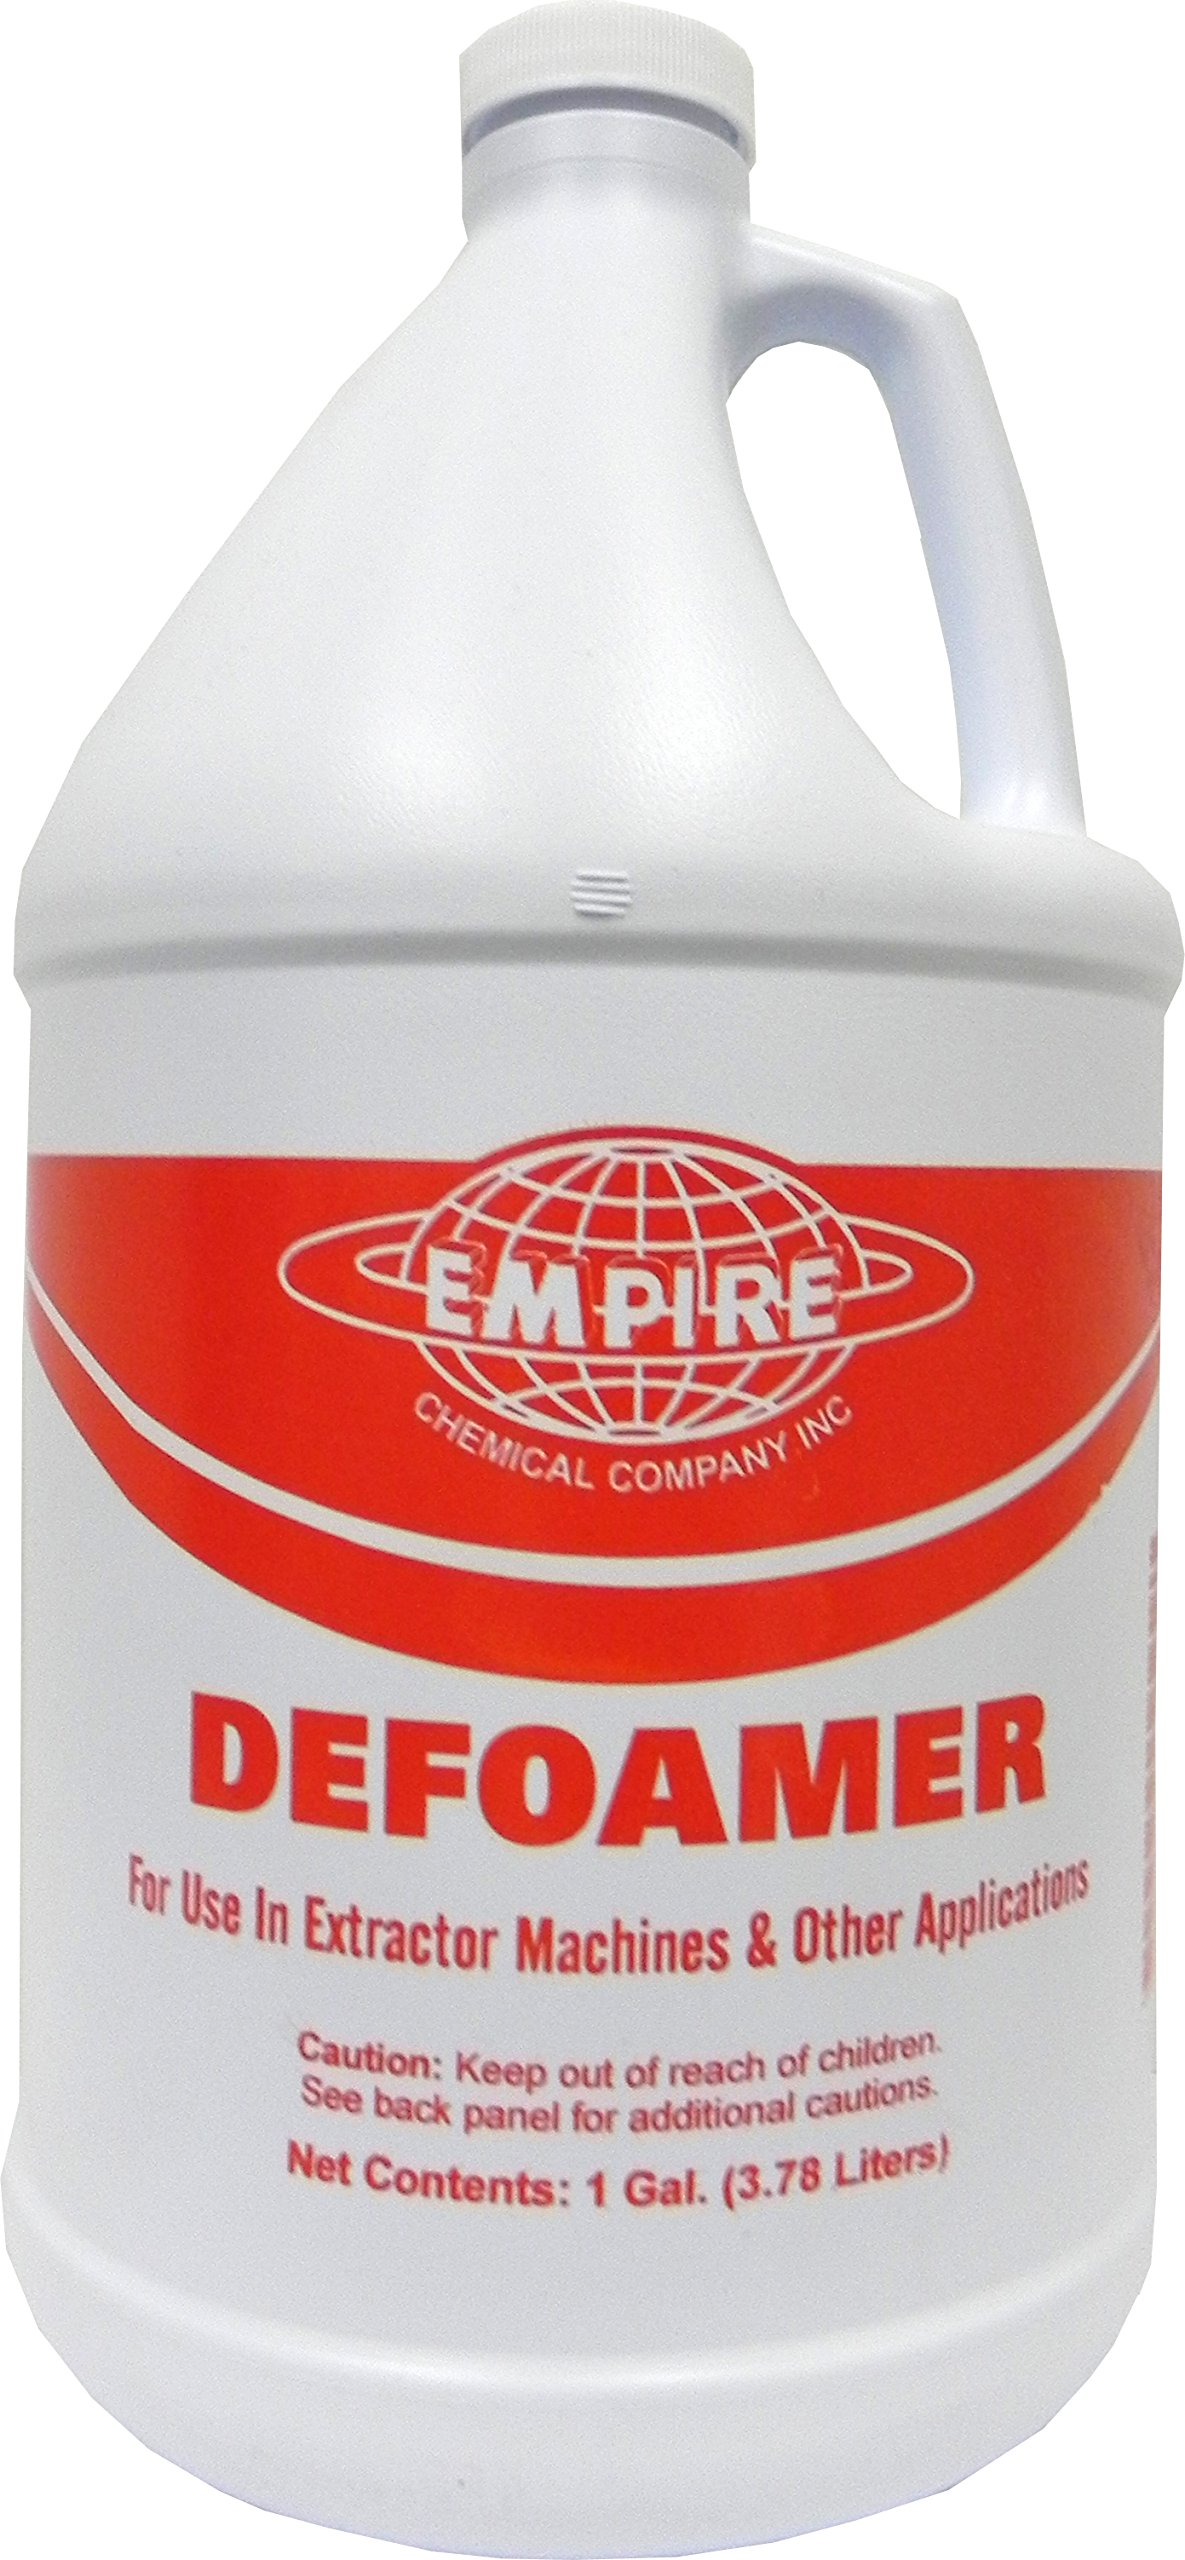 Empire Defoamer for Use in Extractor Machines and Other Applications by Empire Cleaning Supply